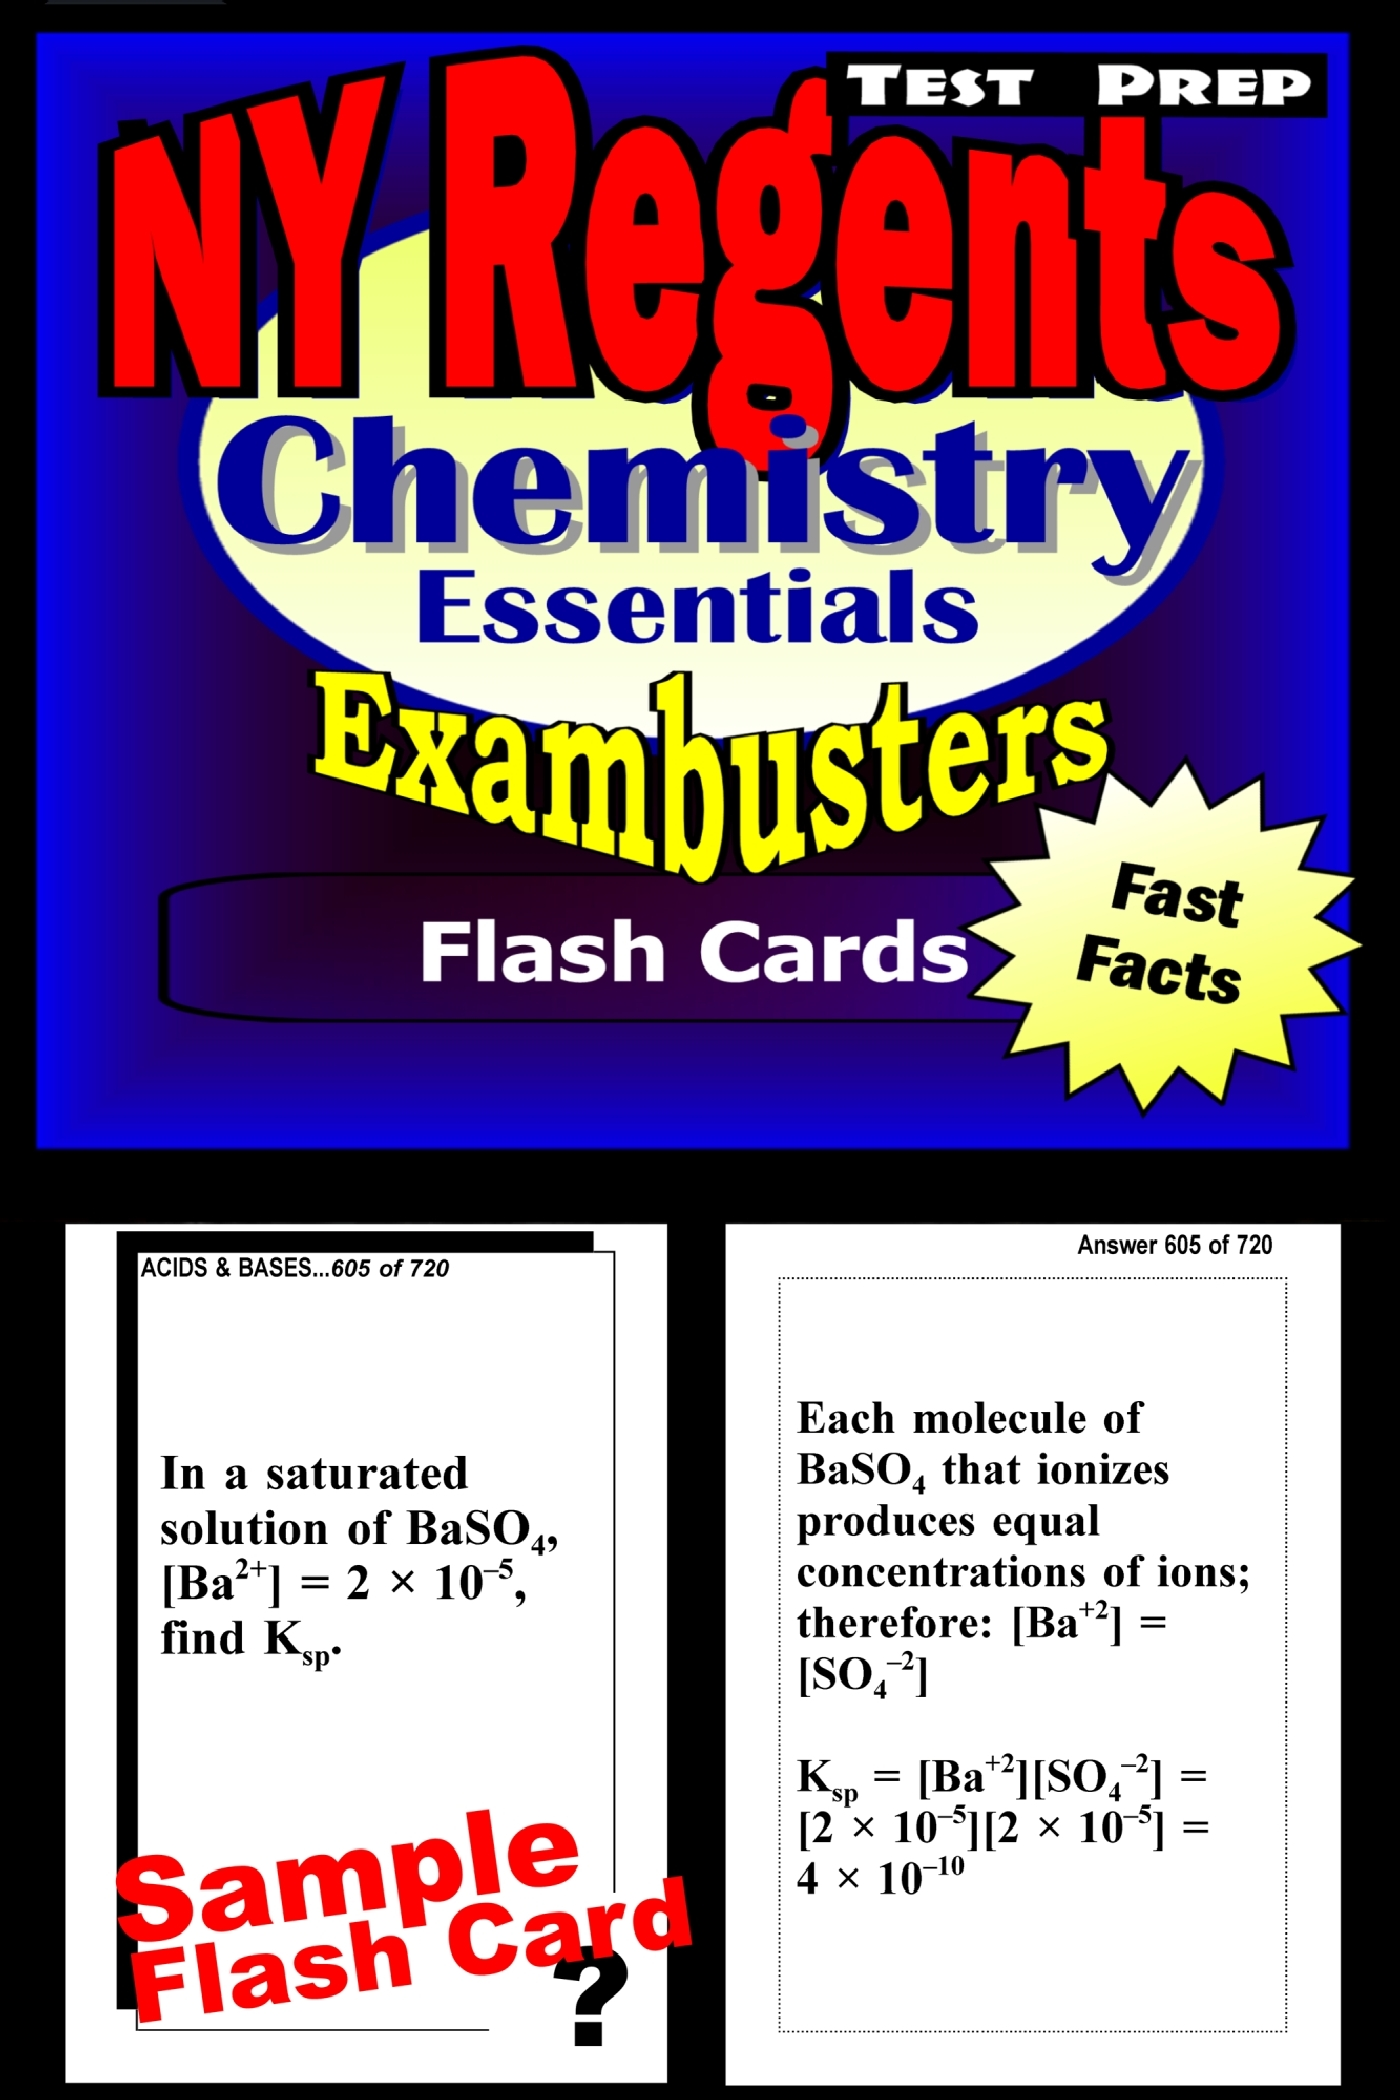 NY Regents Chemistry Test Prep Review--Exambusters Flashcards: New York Regents Exam Study Guide